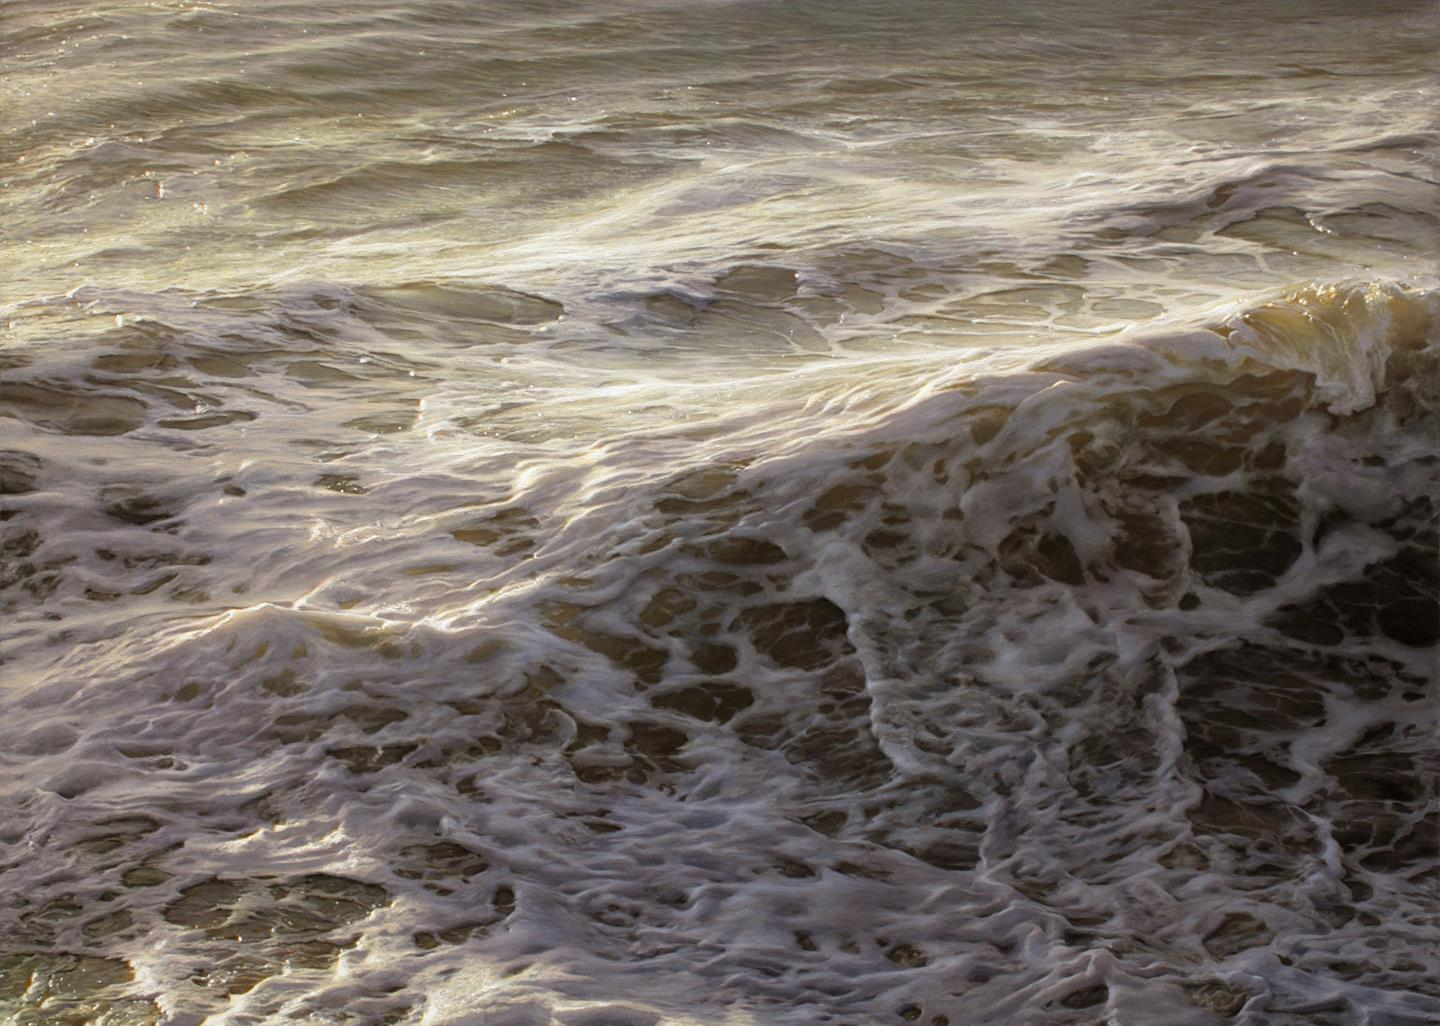 Artwork-by-Ran-Ortner-6